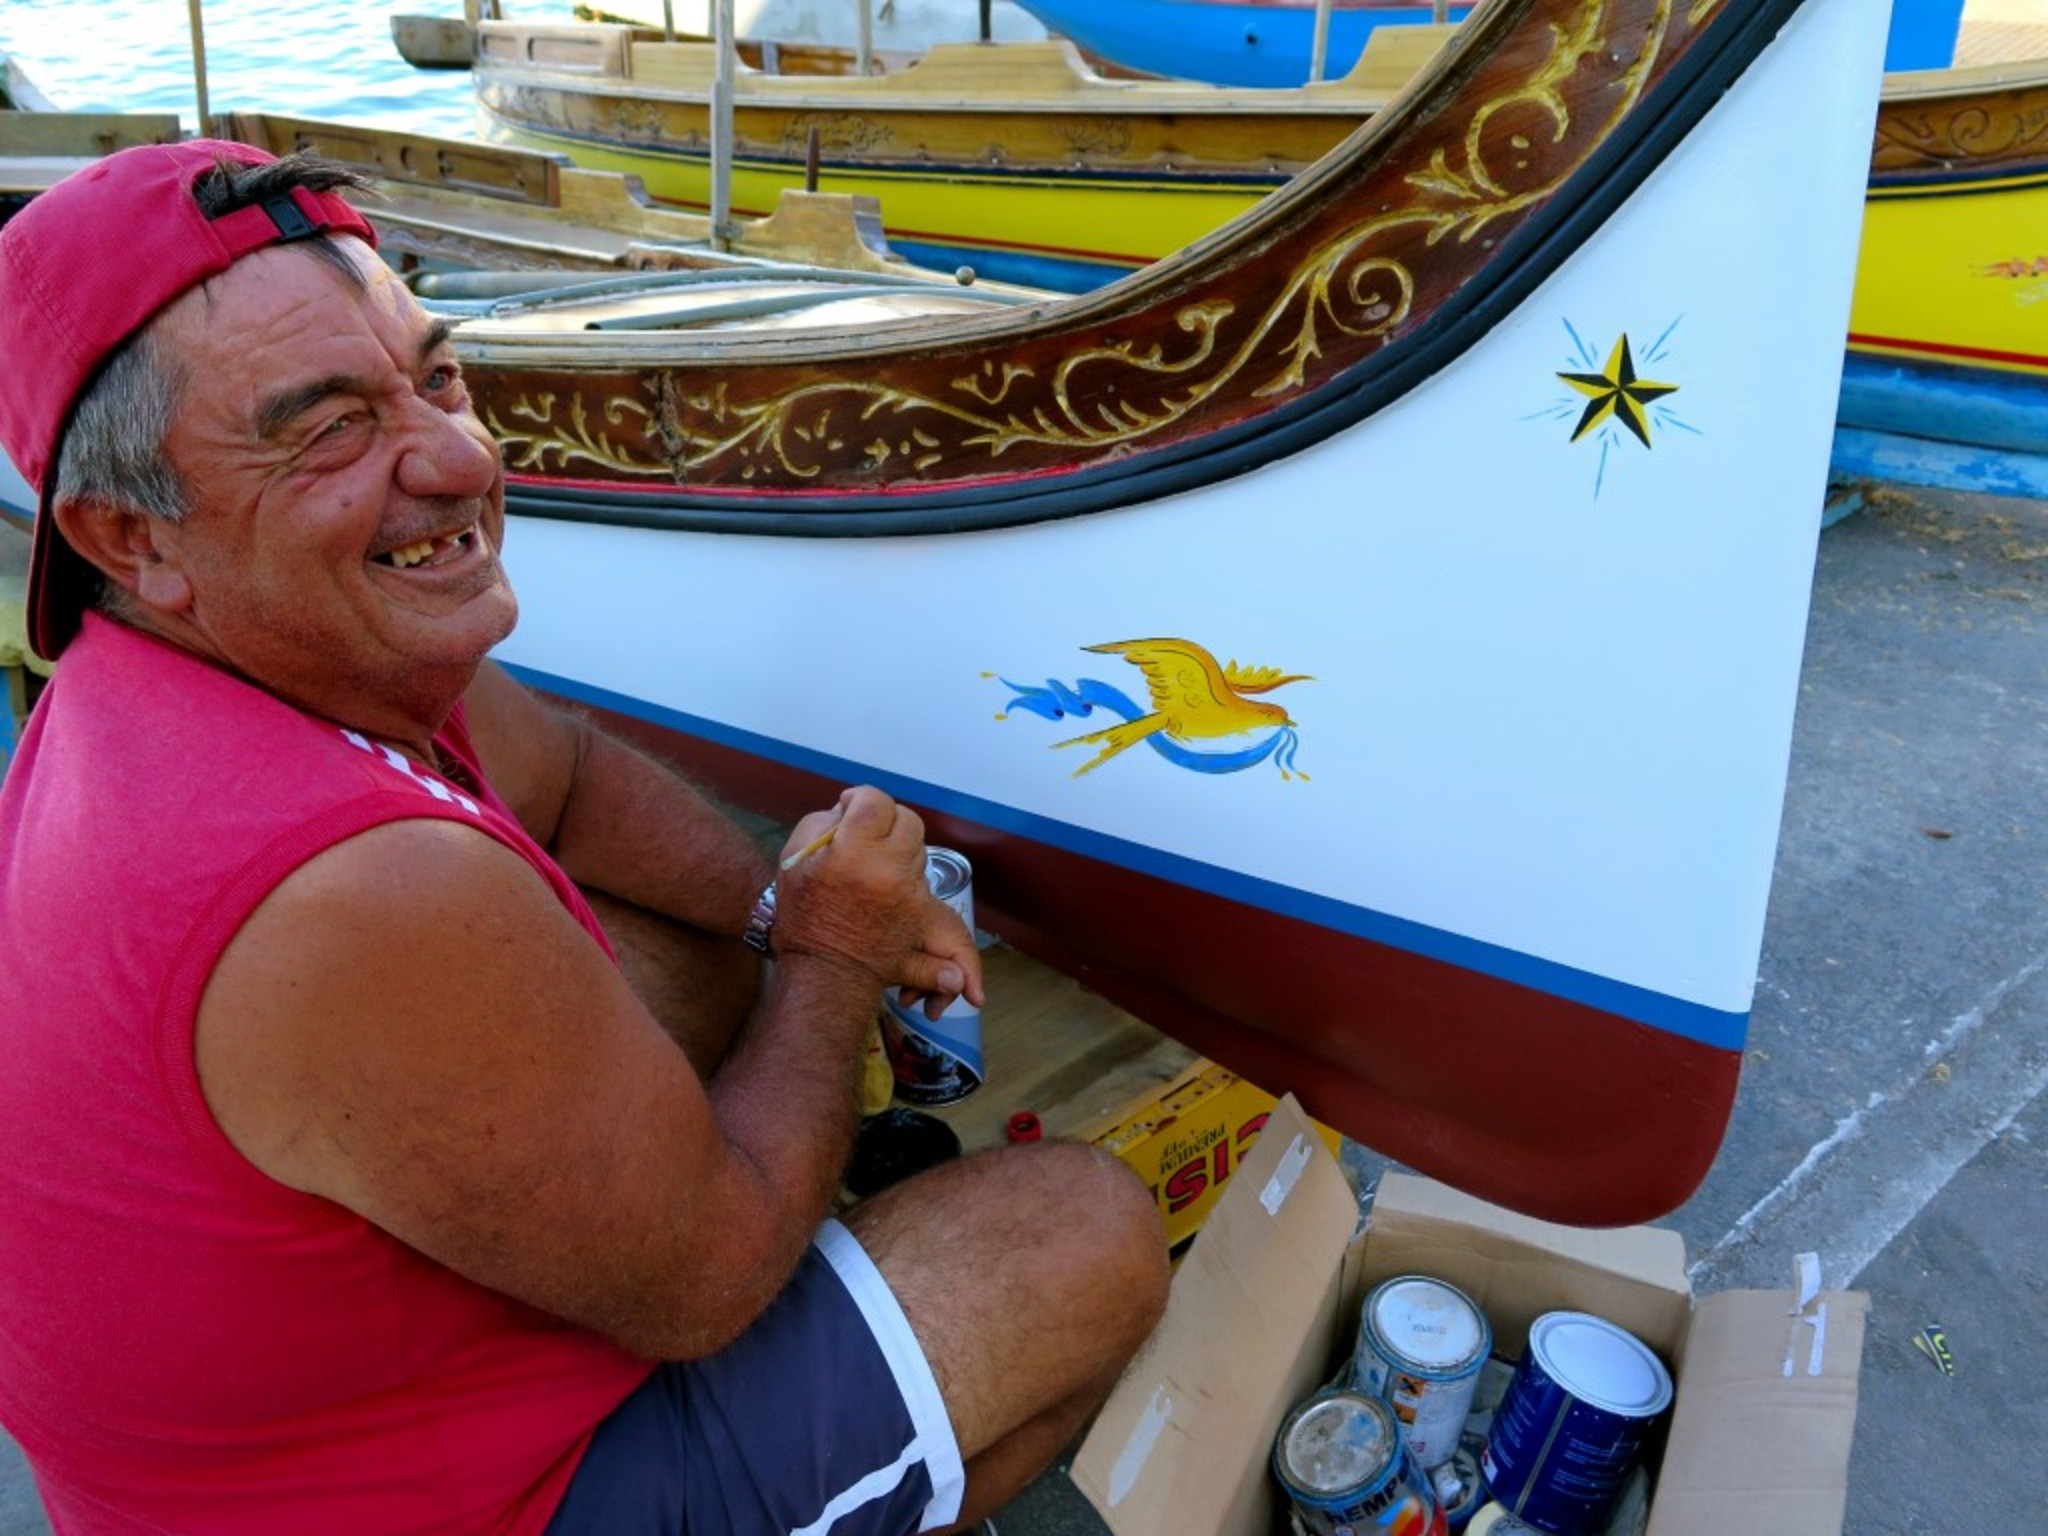 Local fisherman painting his boat...